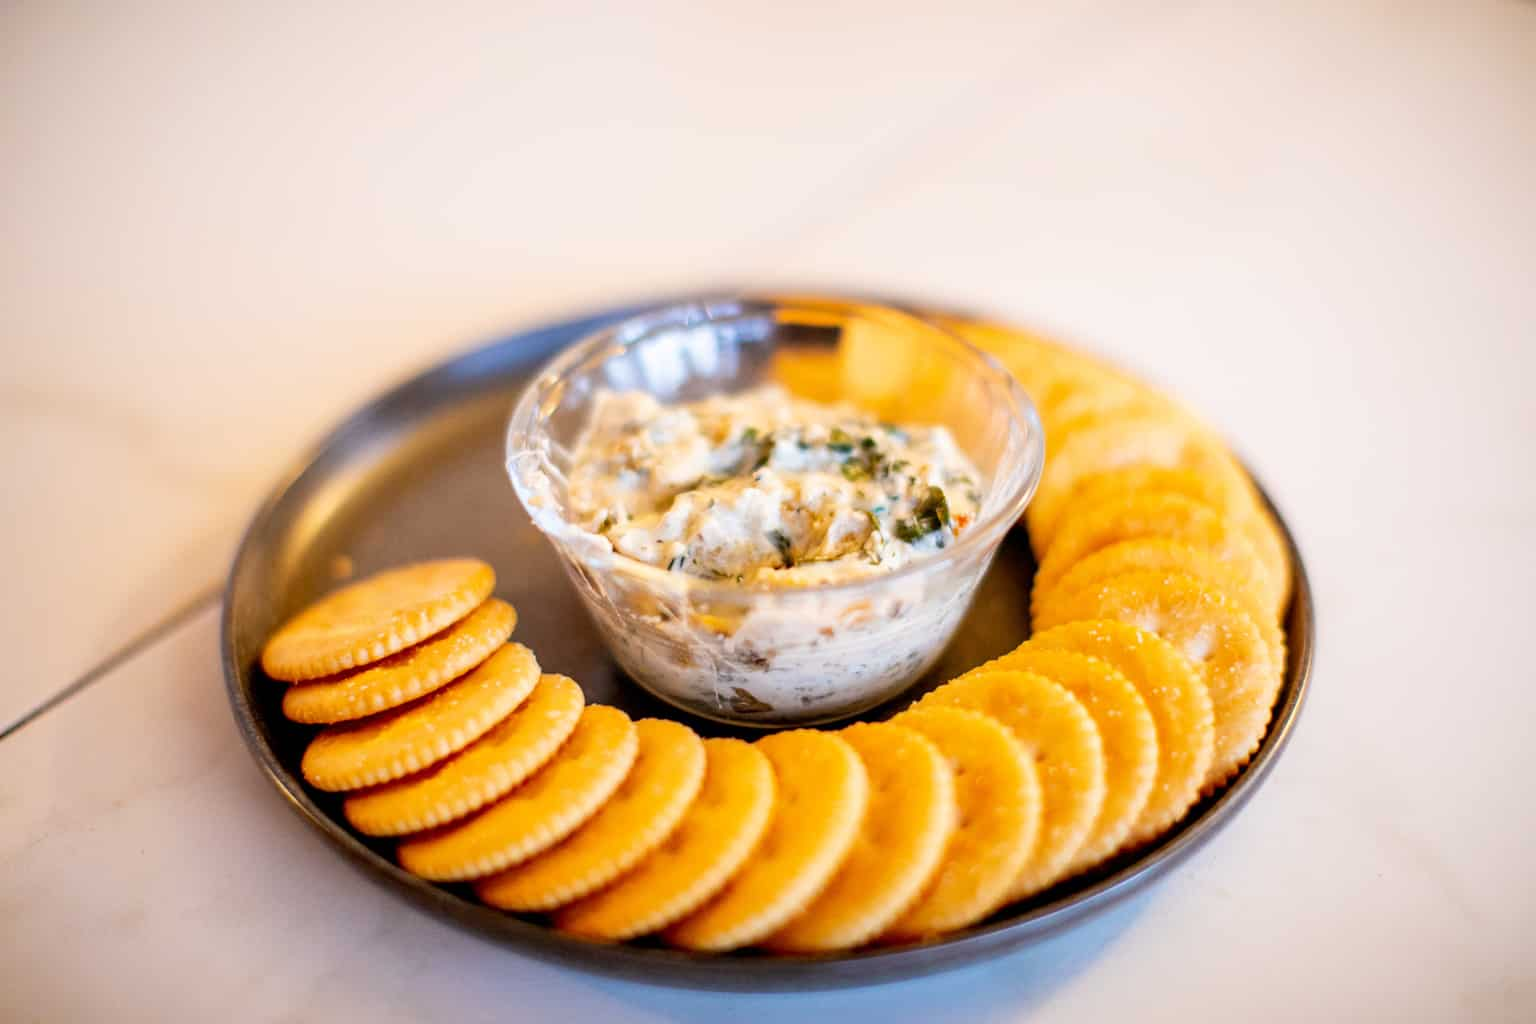 Baked spinach artichoke dip recipe prepared in a bowl with a plate full of crackers